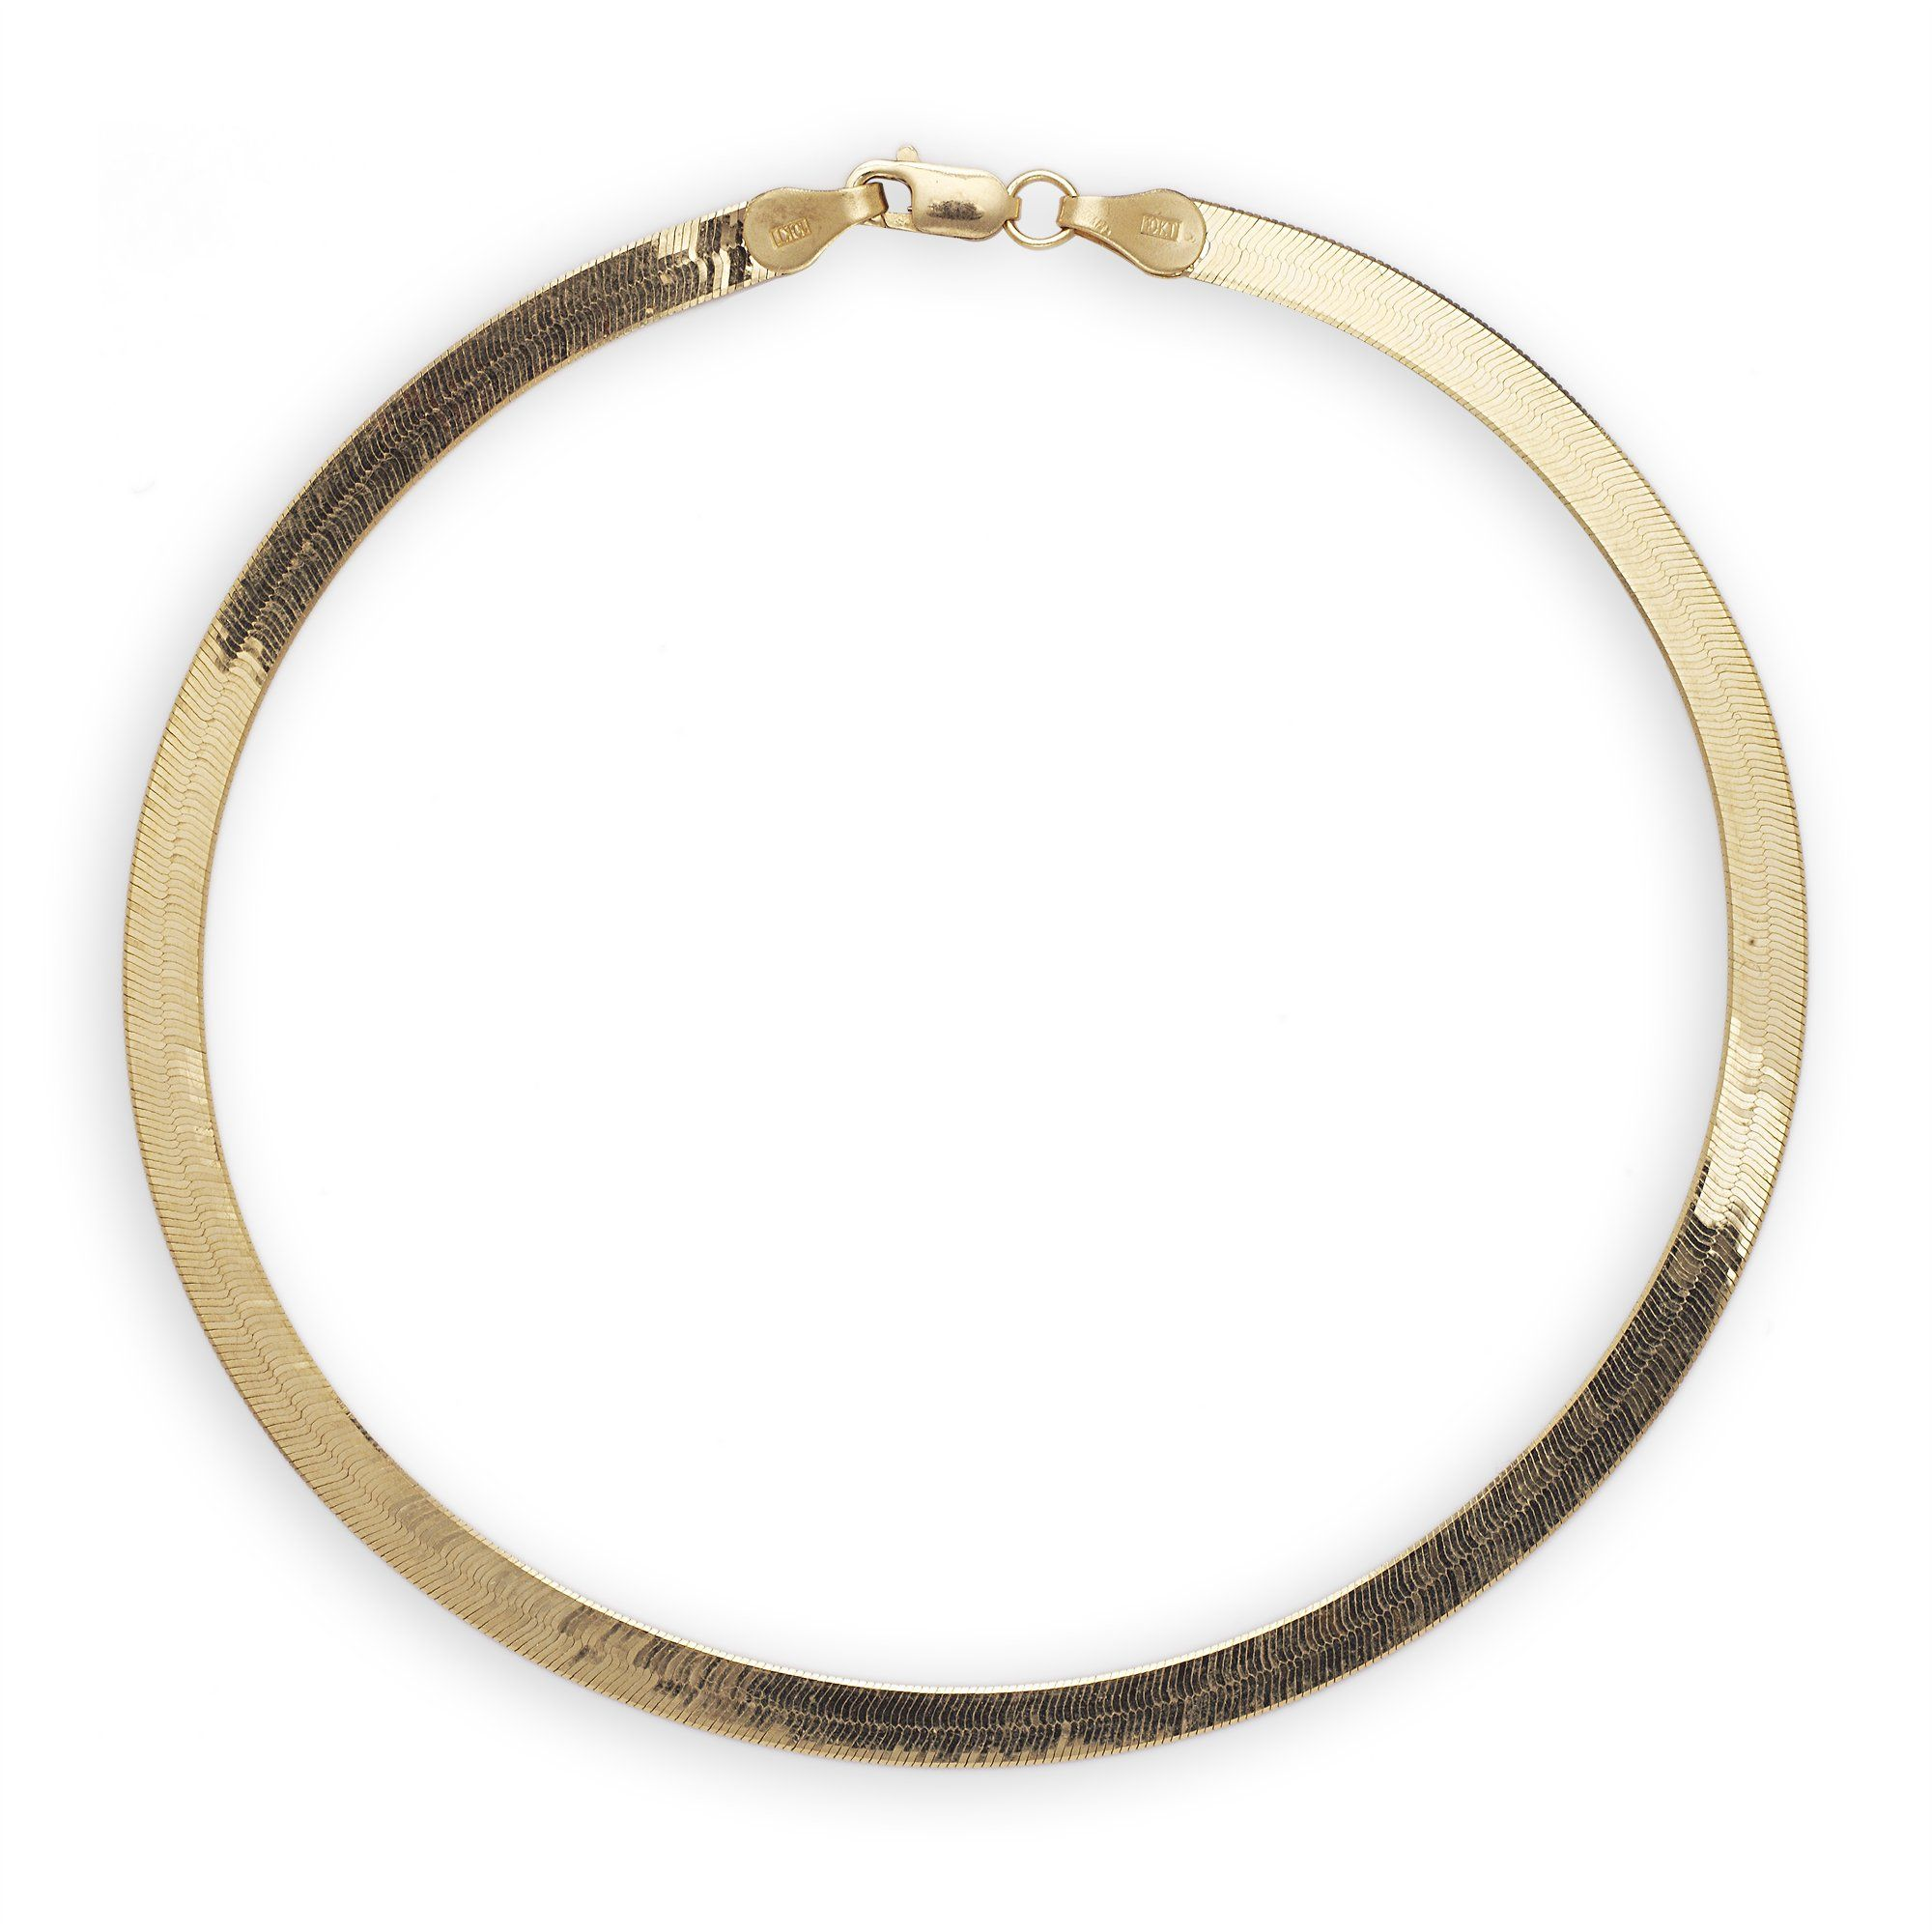 inch zero jewelry sale id bulgari bangle gold yellow for master bvlgari bangles b j at bracelet bracelets